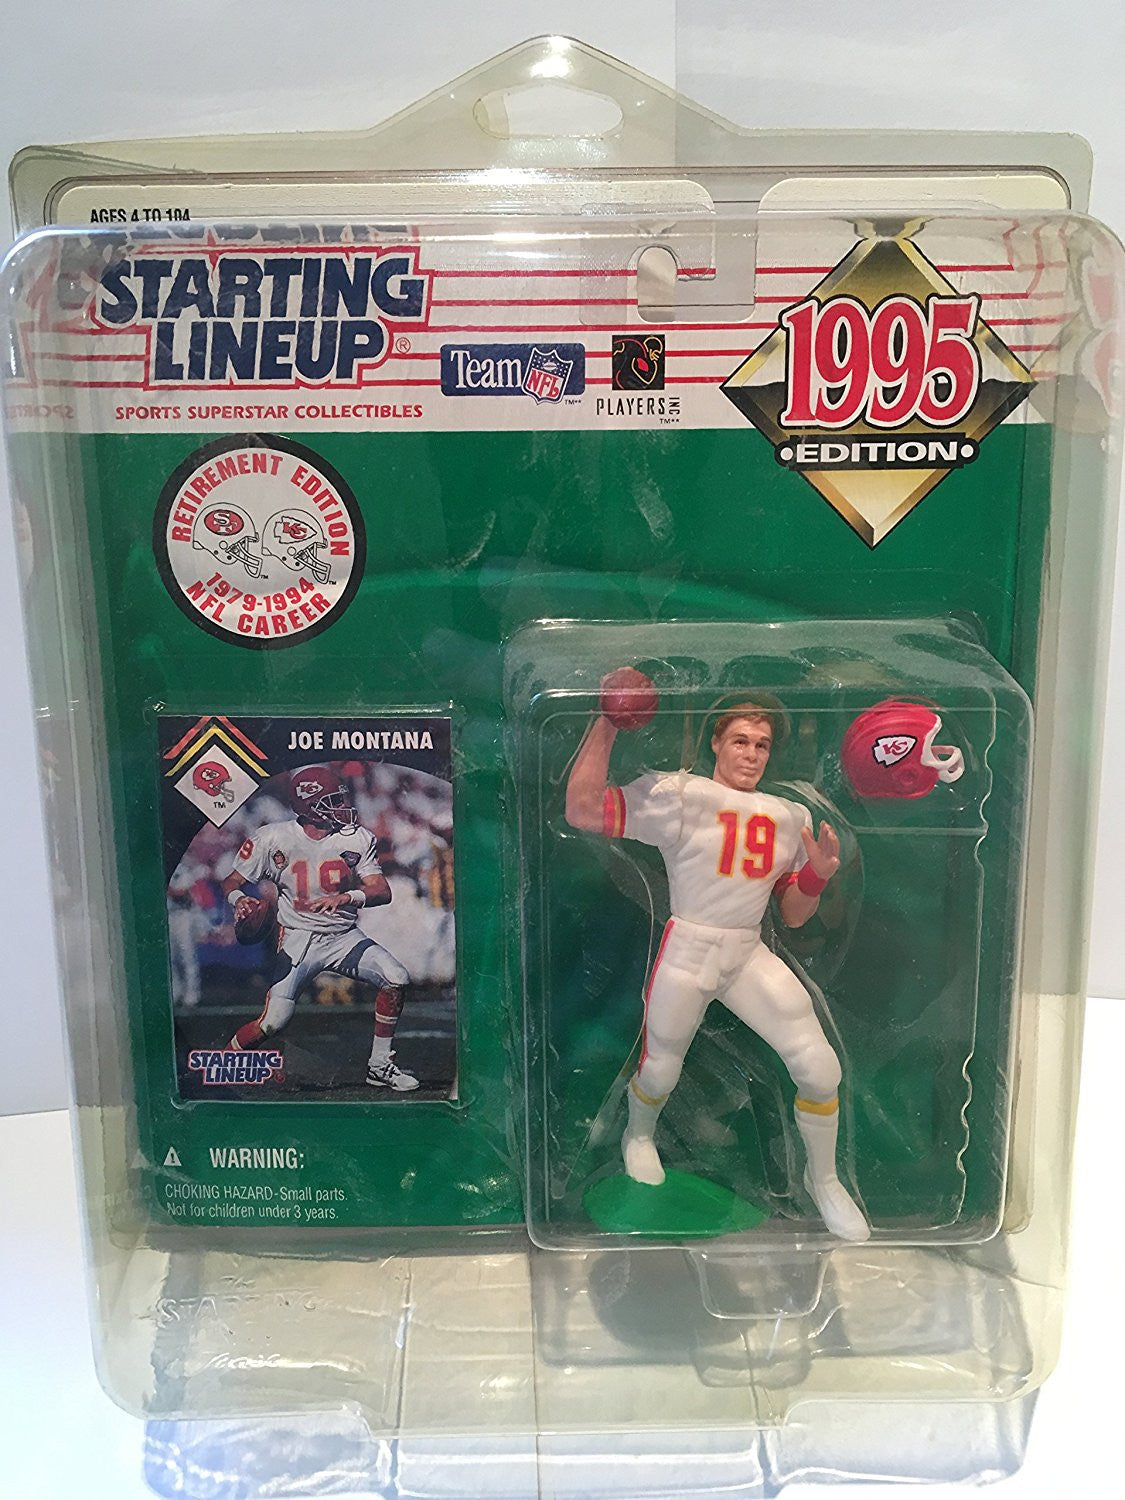 1995 NFL Starting Lineup - Joe Montana - Retirement Edition - Kansas City Chiefs